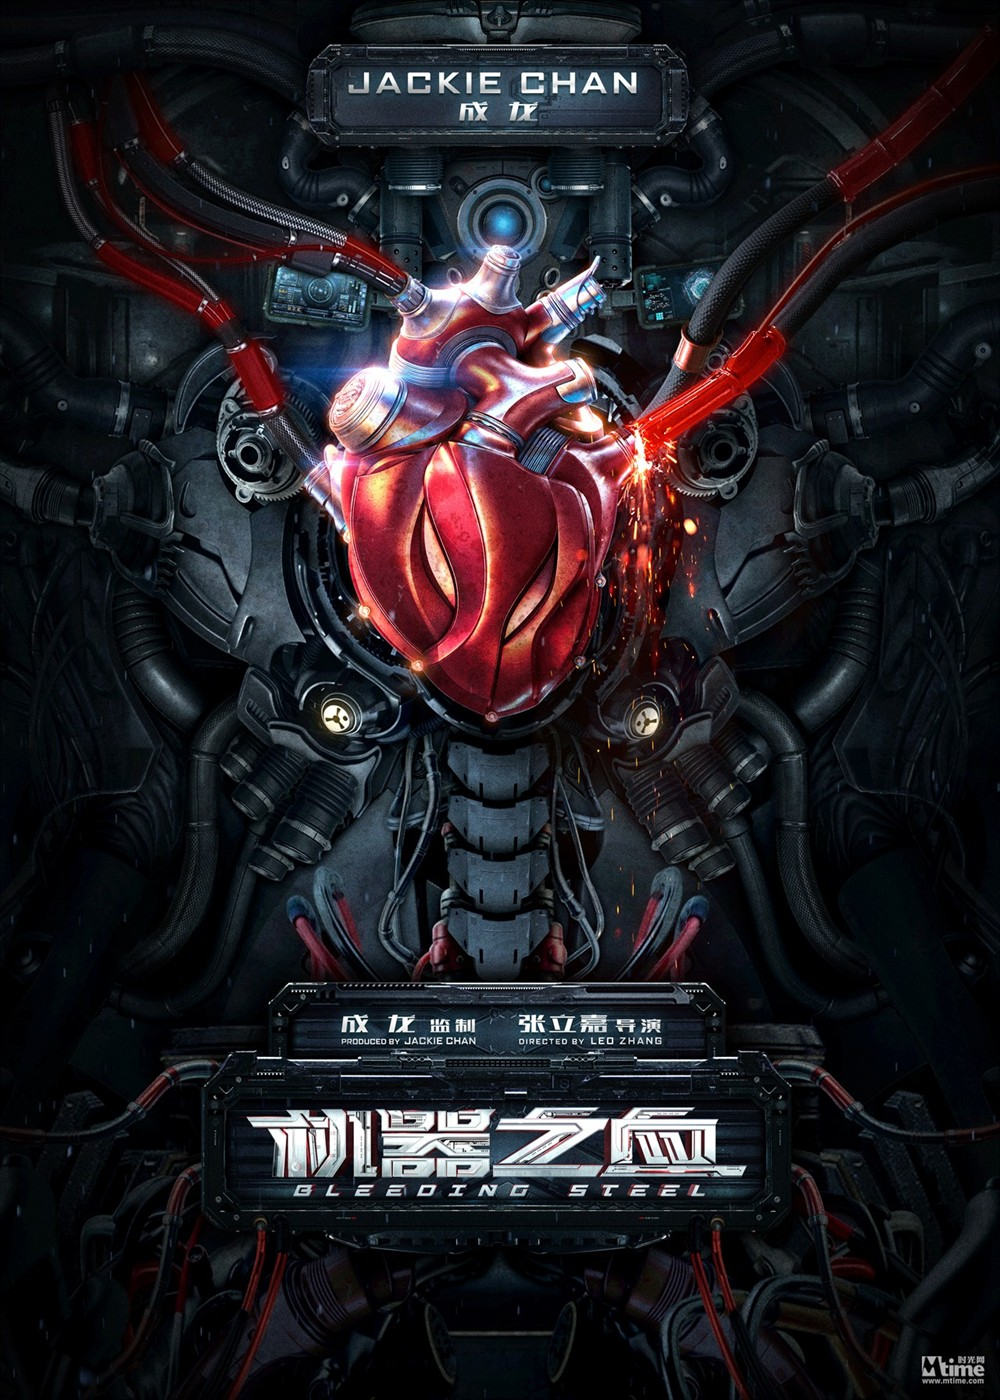 bleeding steel jackie chan movie poster